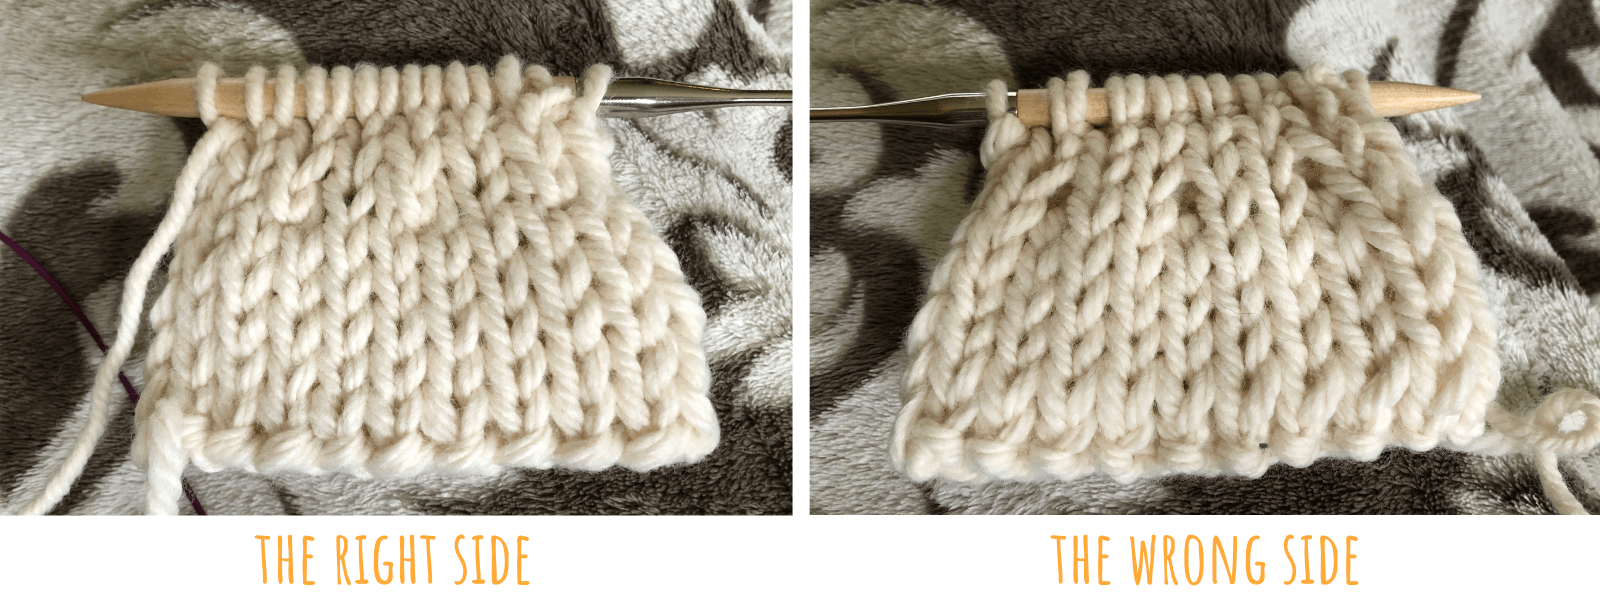 How to increase when knitting double stockinette